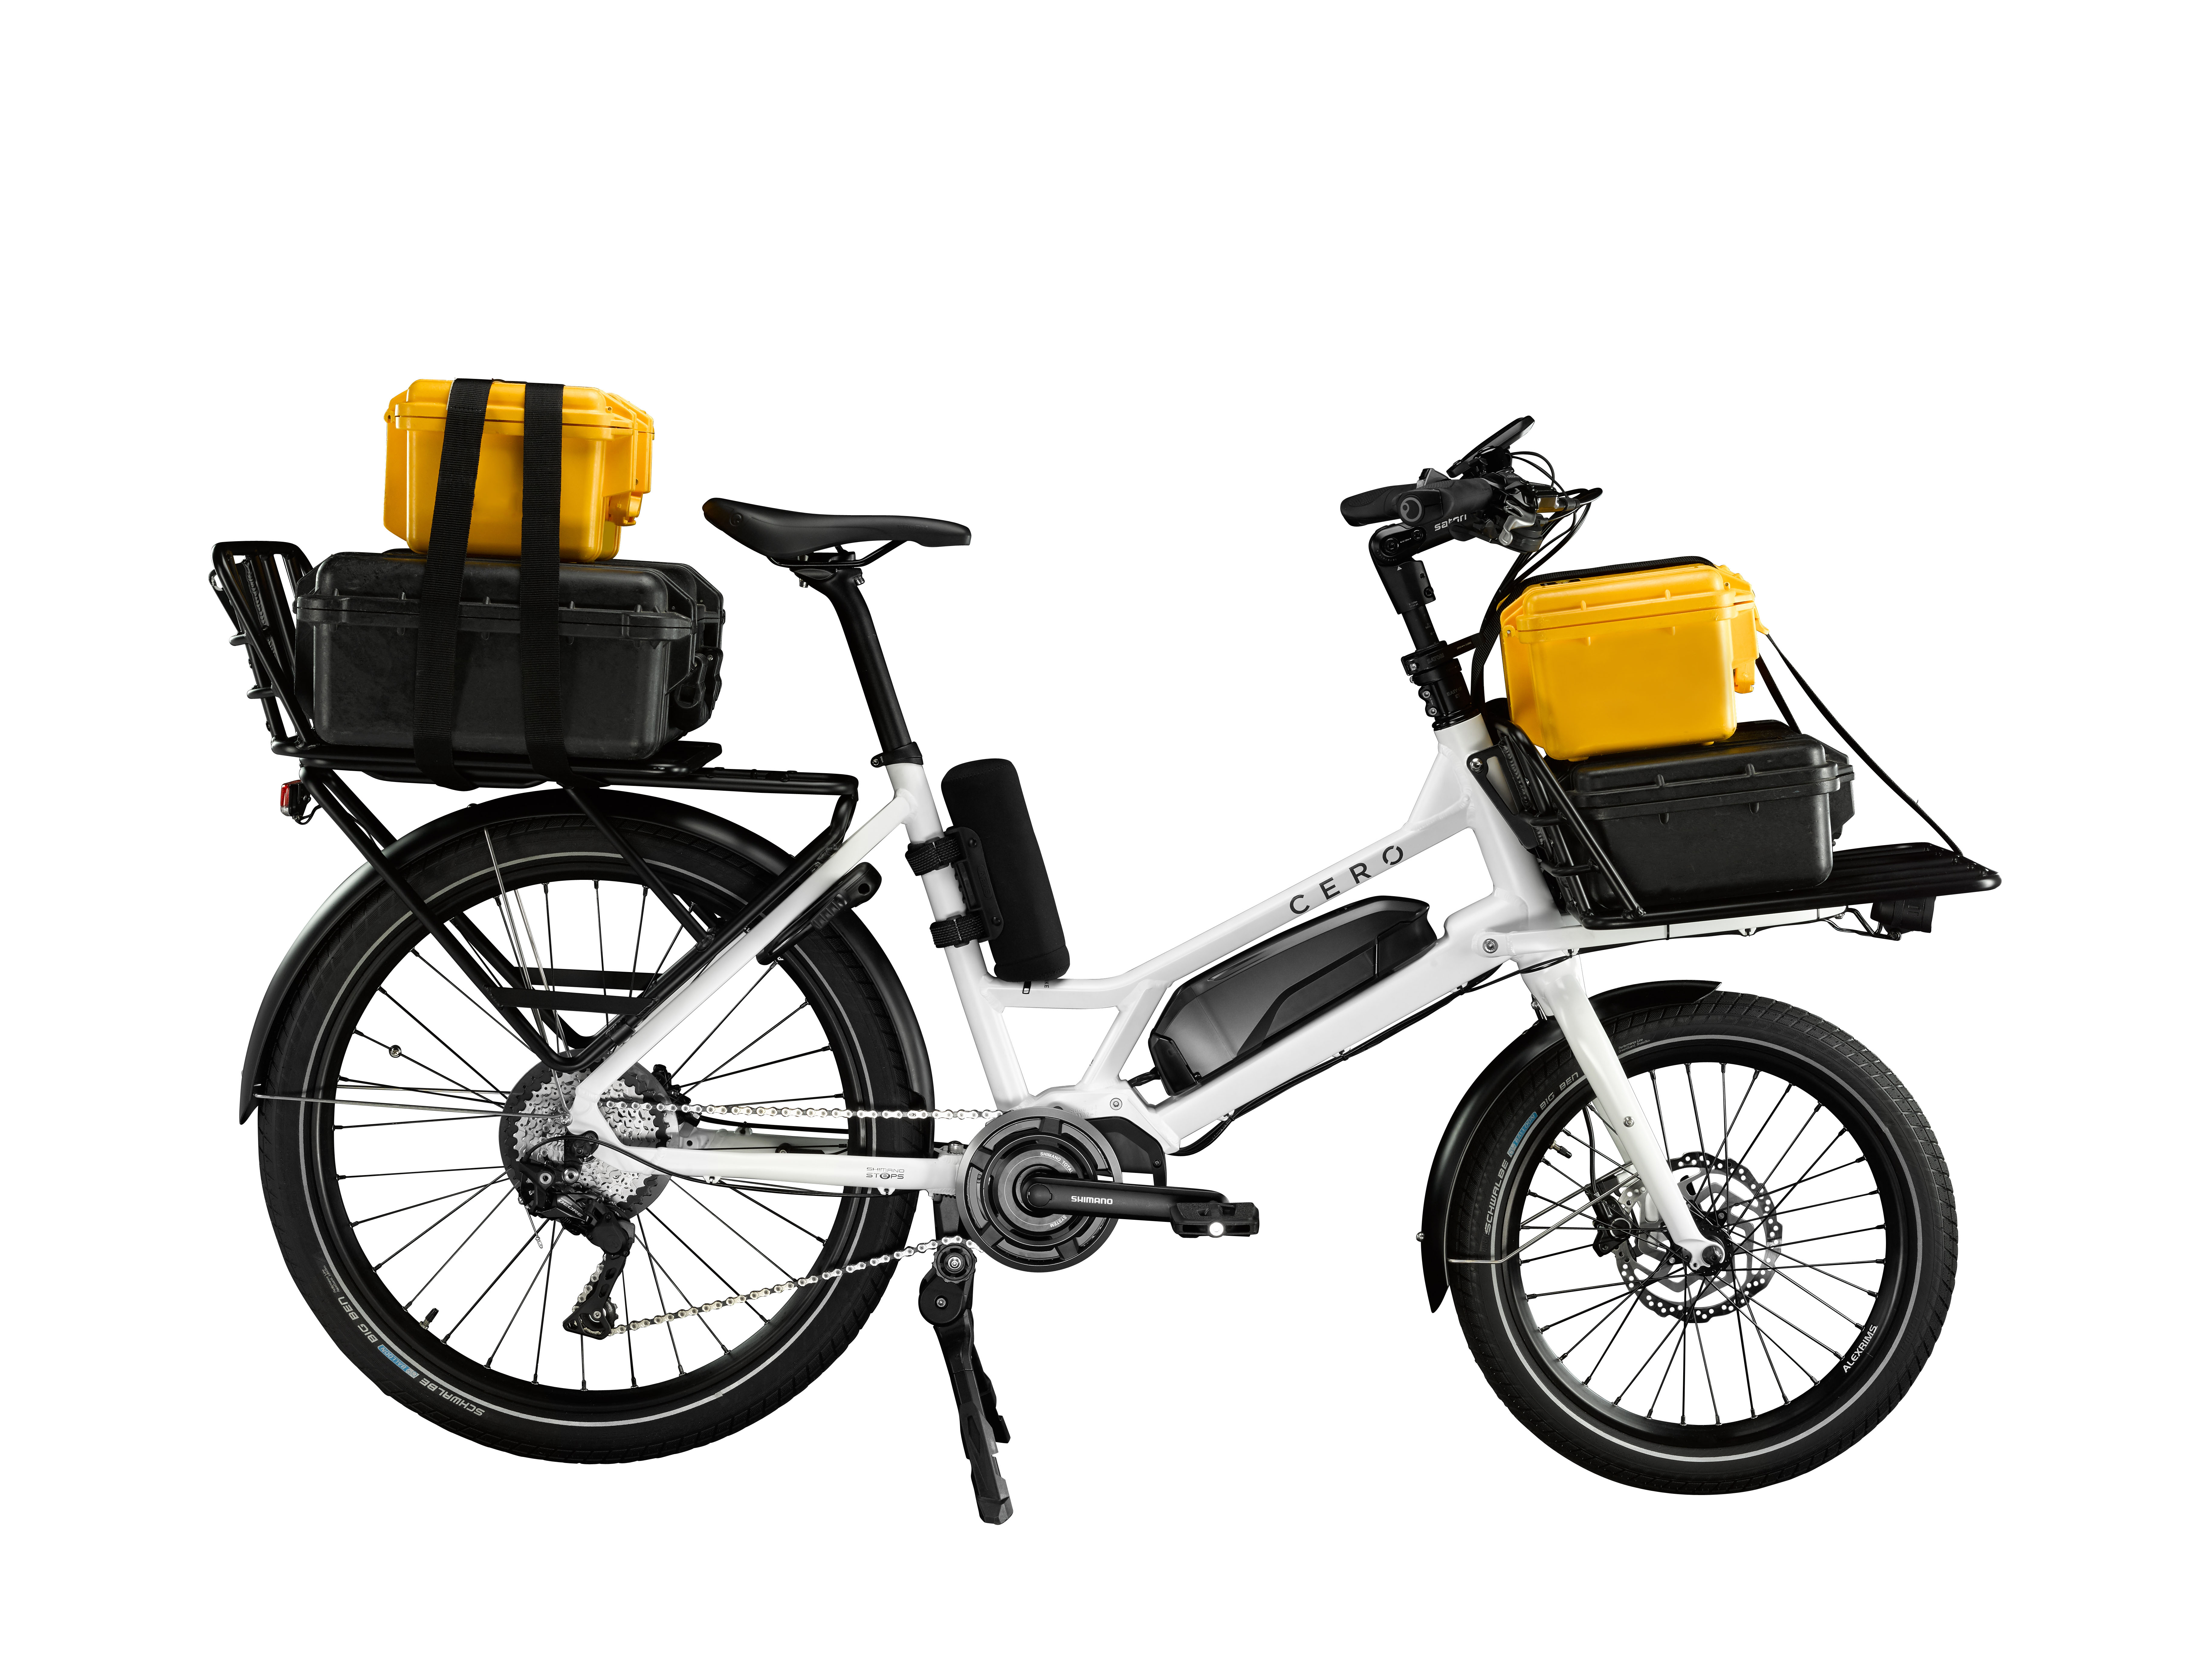 This electric bike could replace your SUV